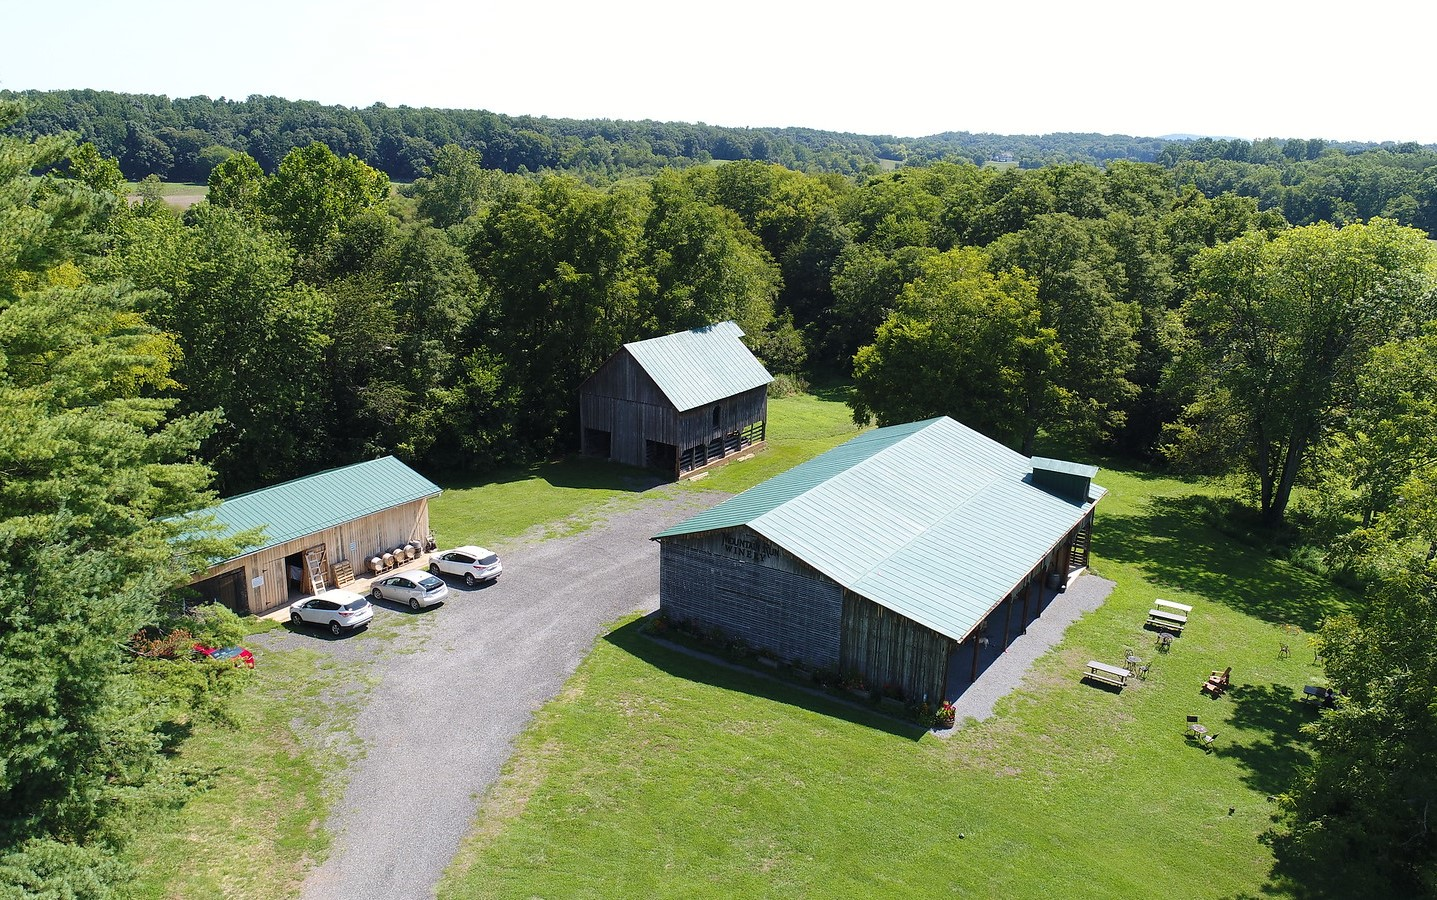 Mountain Run Winery is centered around a trio of old barns on the property